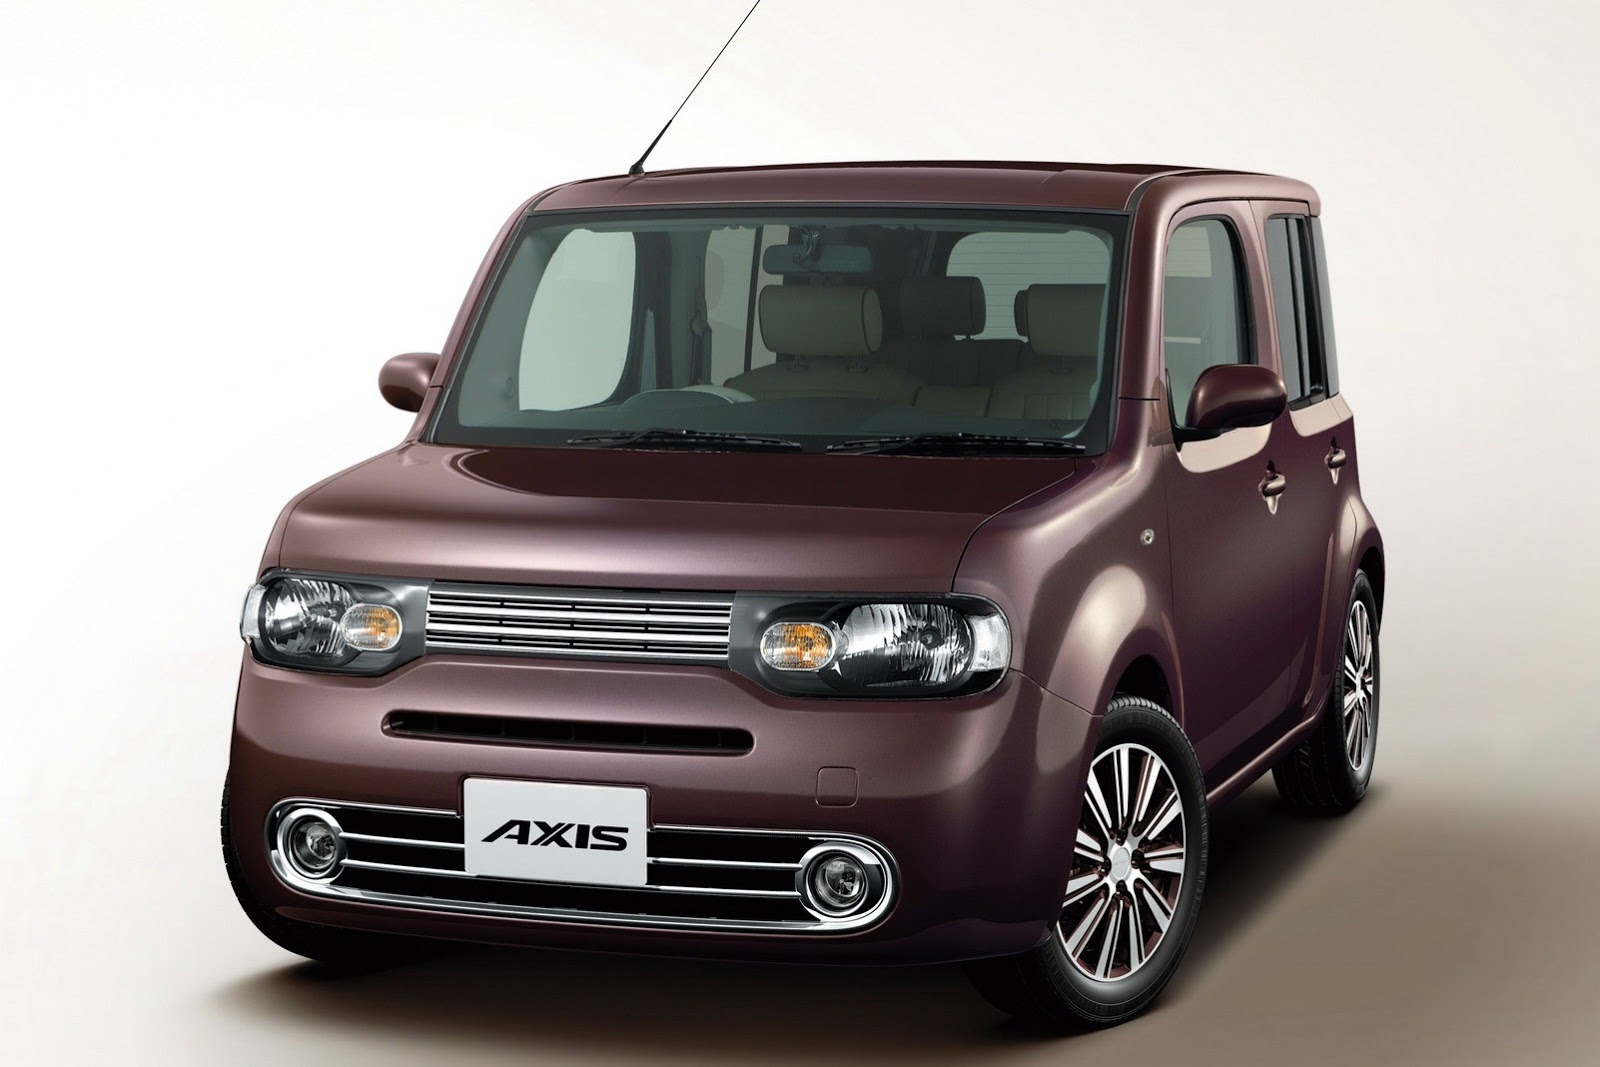 nissan cube 2015 review amazing pictures and images look at the car. Black Bedroom Furniture Sets. Home Design Ideas